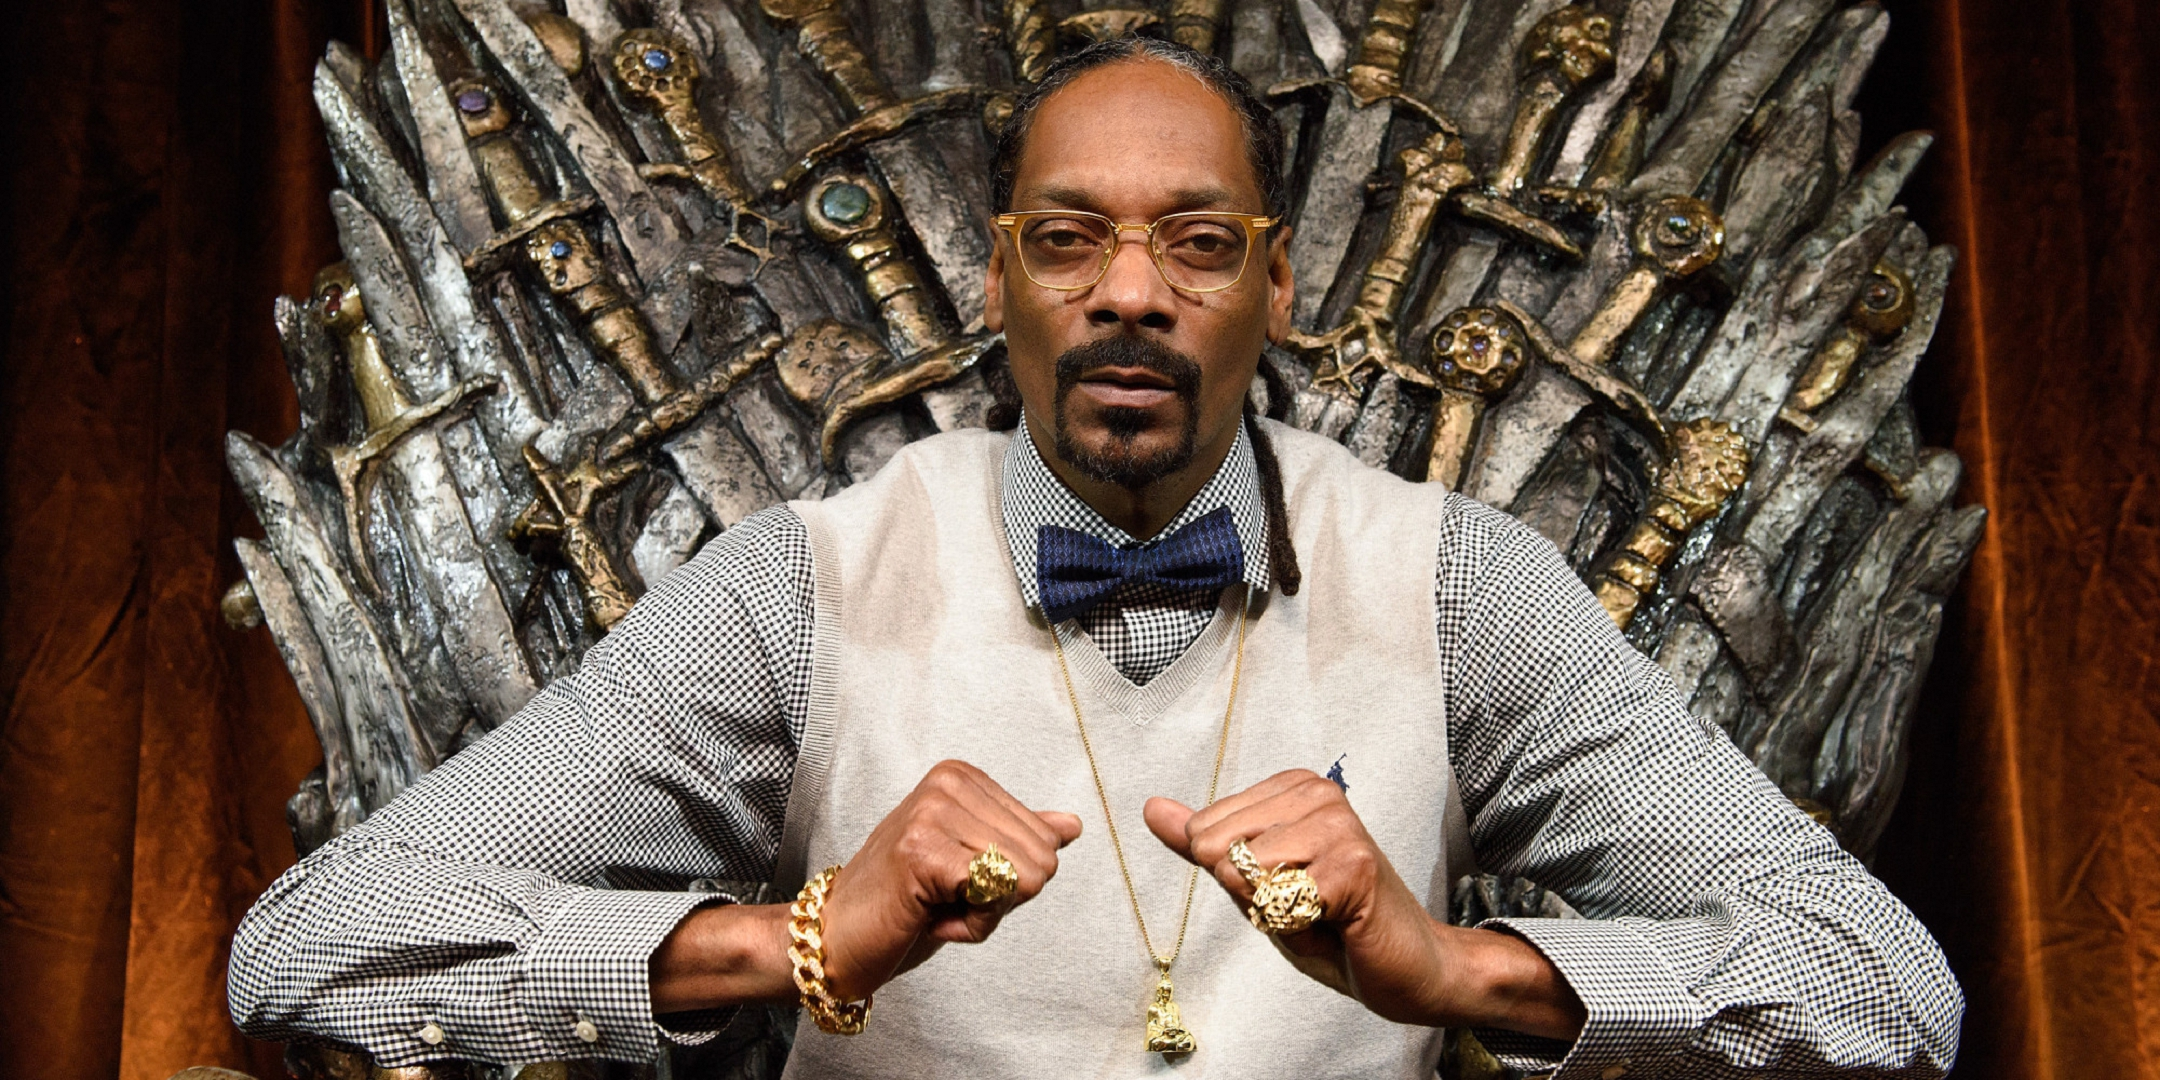 Snoop Dogg Images